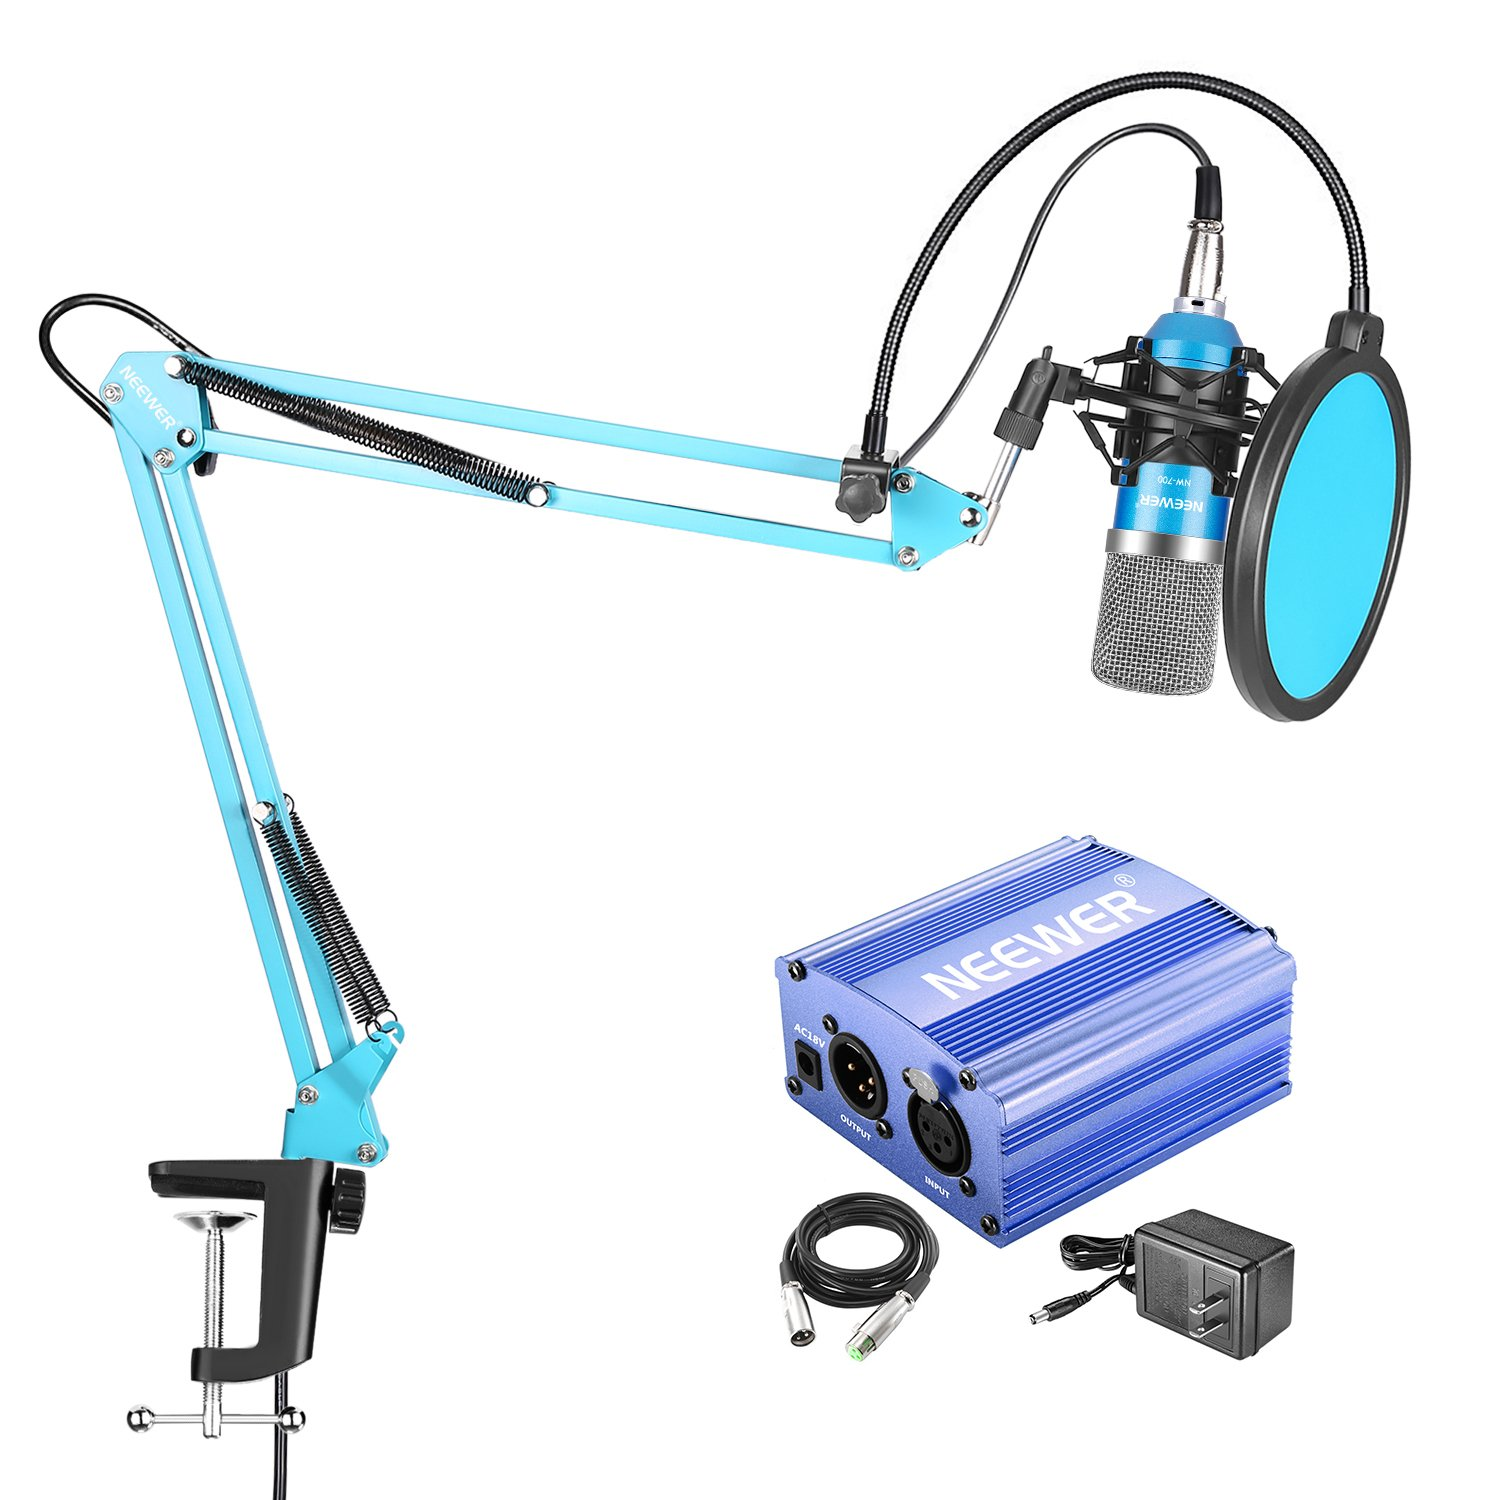 Neewer NW-700 Blue Professional Condenser Microphone & NW-35 Blue Suspension Boom Scissor Arm Stand with XLR Cable and Mounting Clamp & NW-3 Pop Filter & 48V Phantom Power Supply with Adapter Kit 40091851@@##1